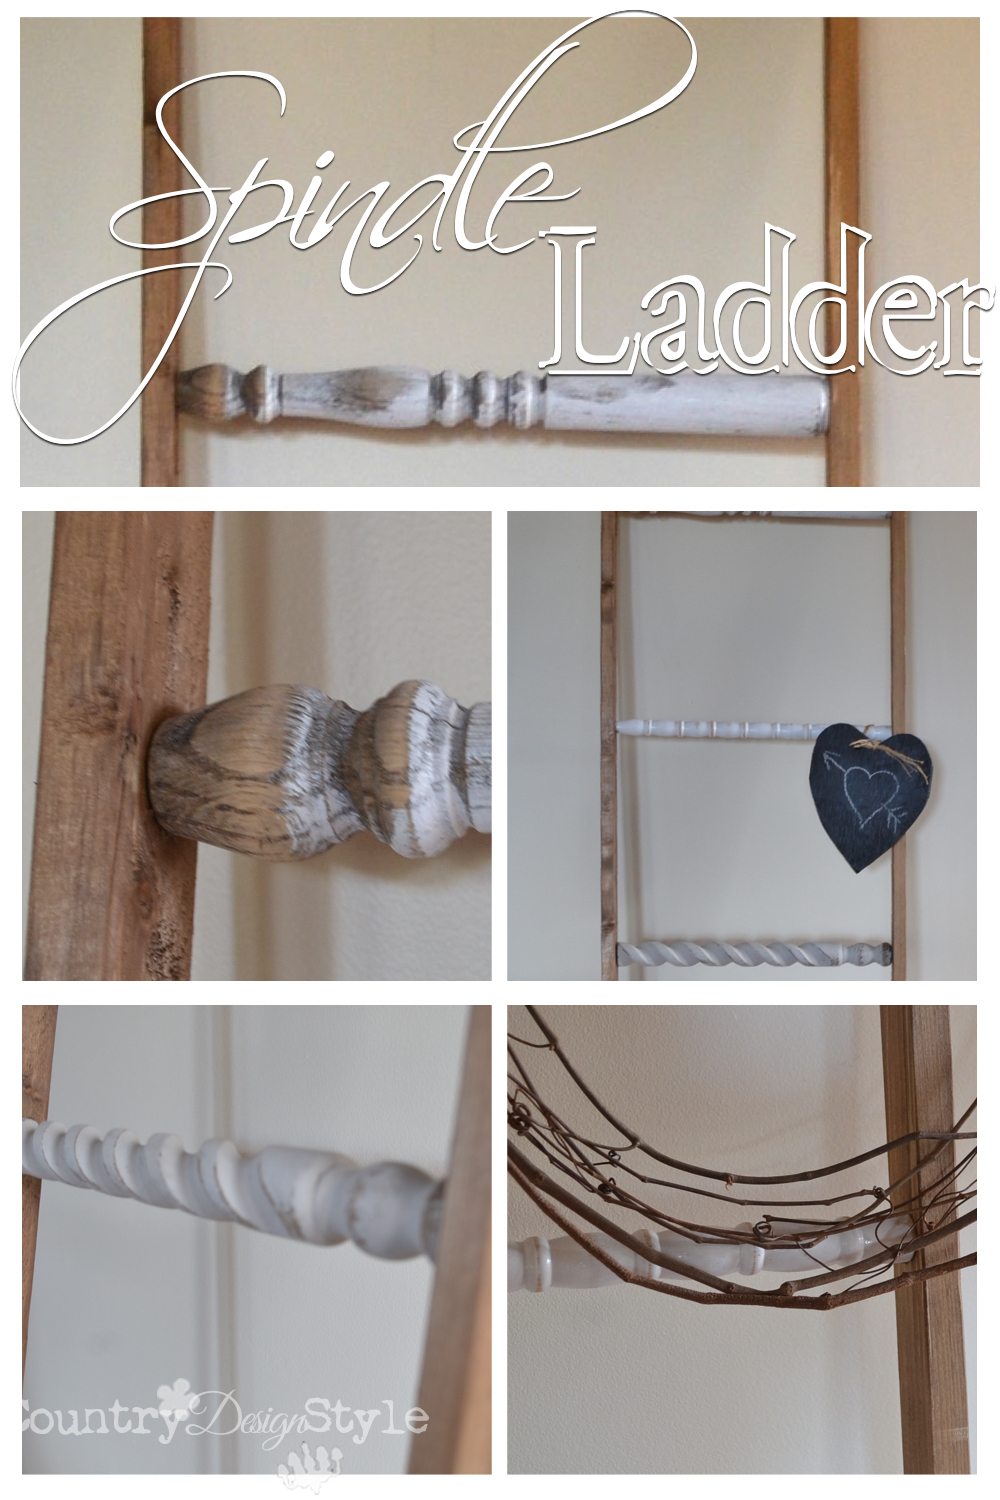 Spindle-ladder-close-up-county-design-style-pn4